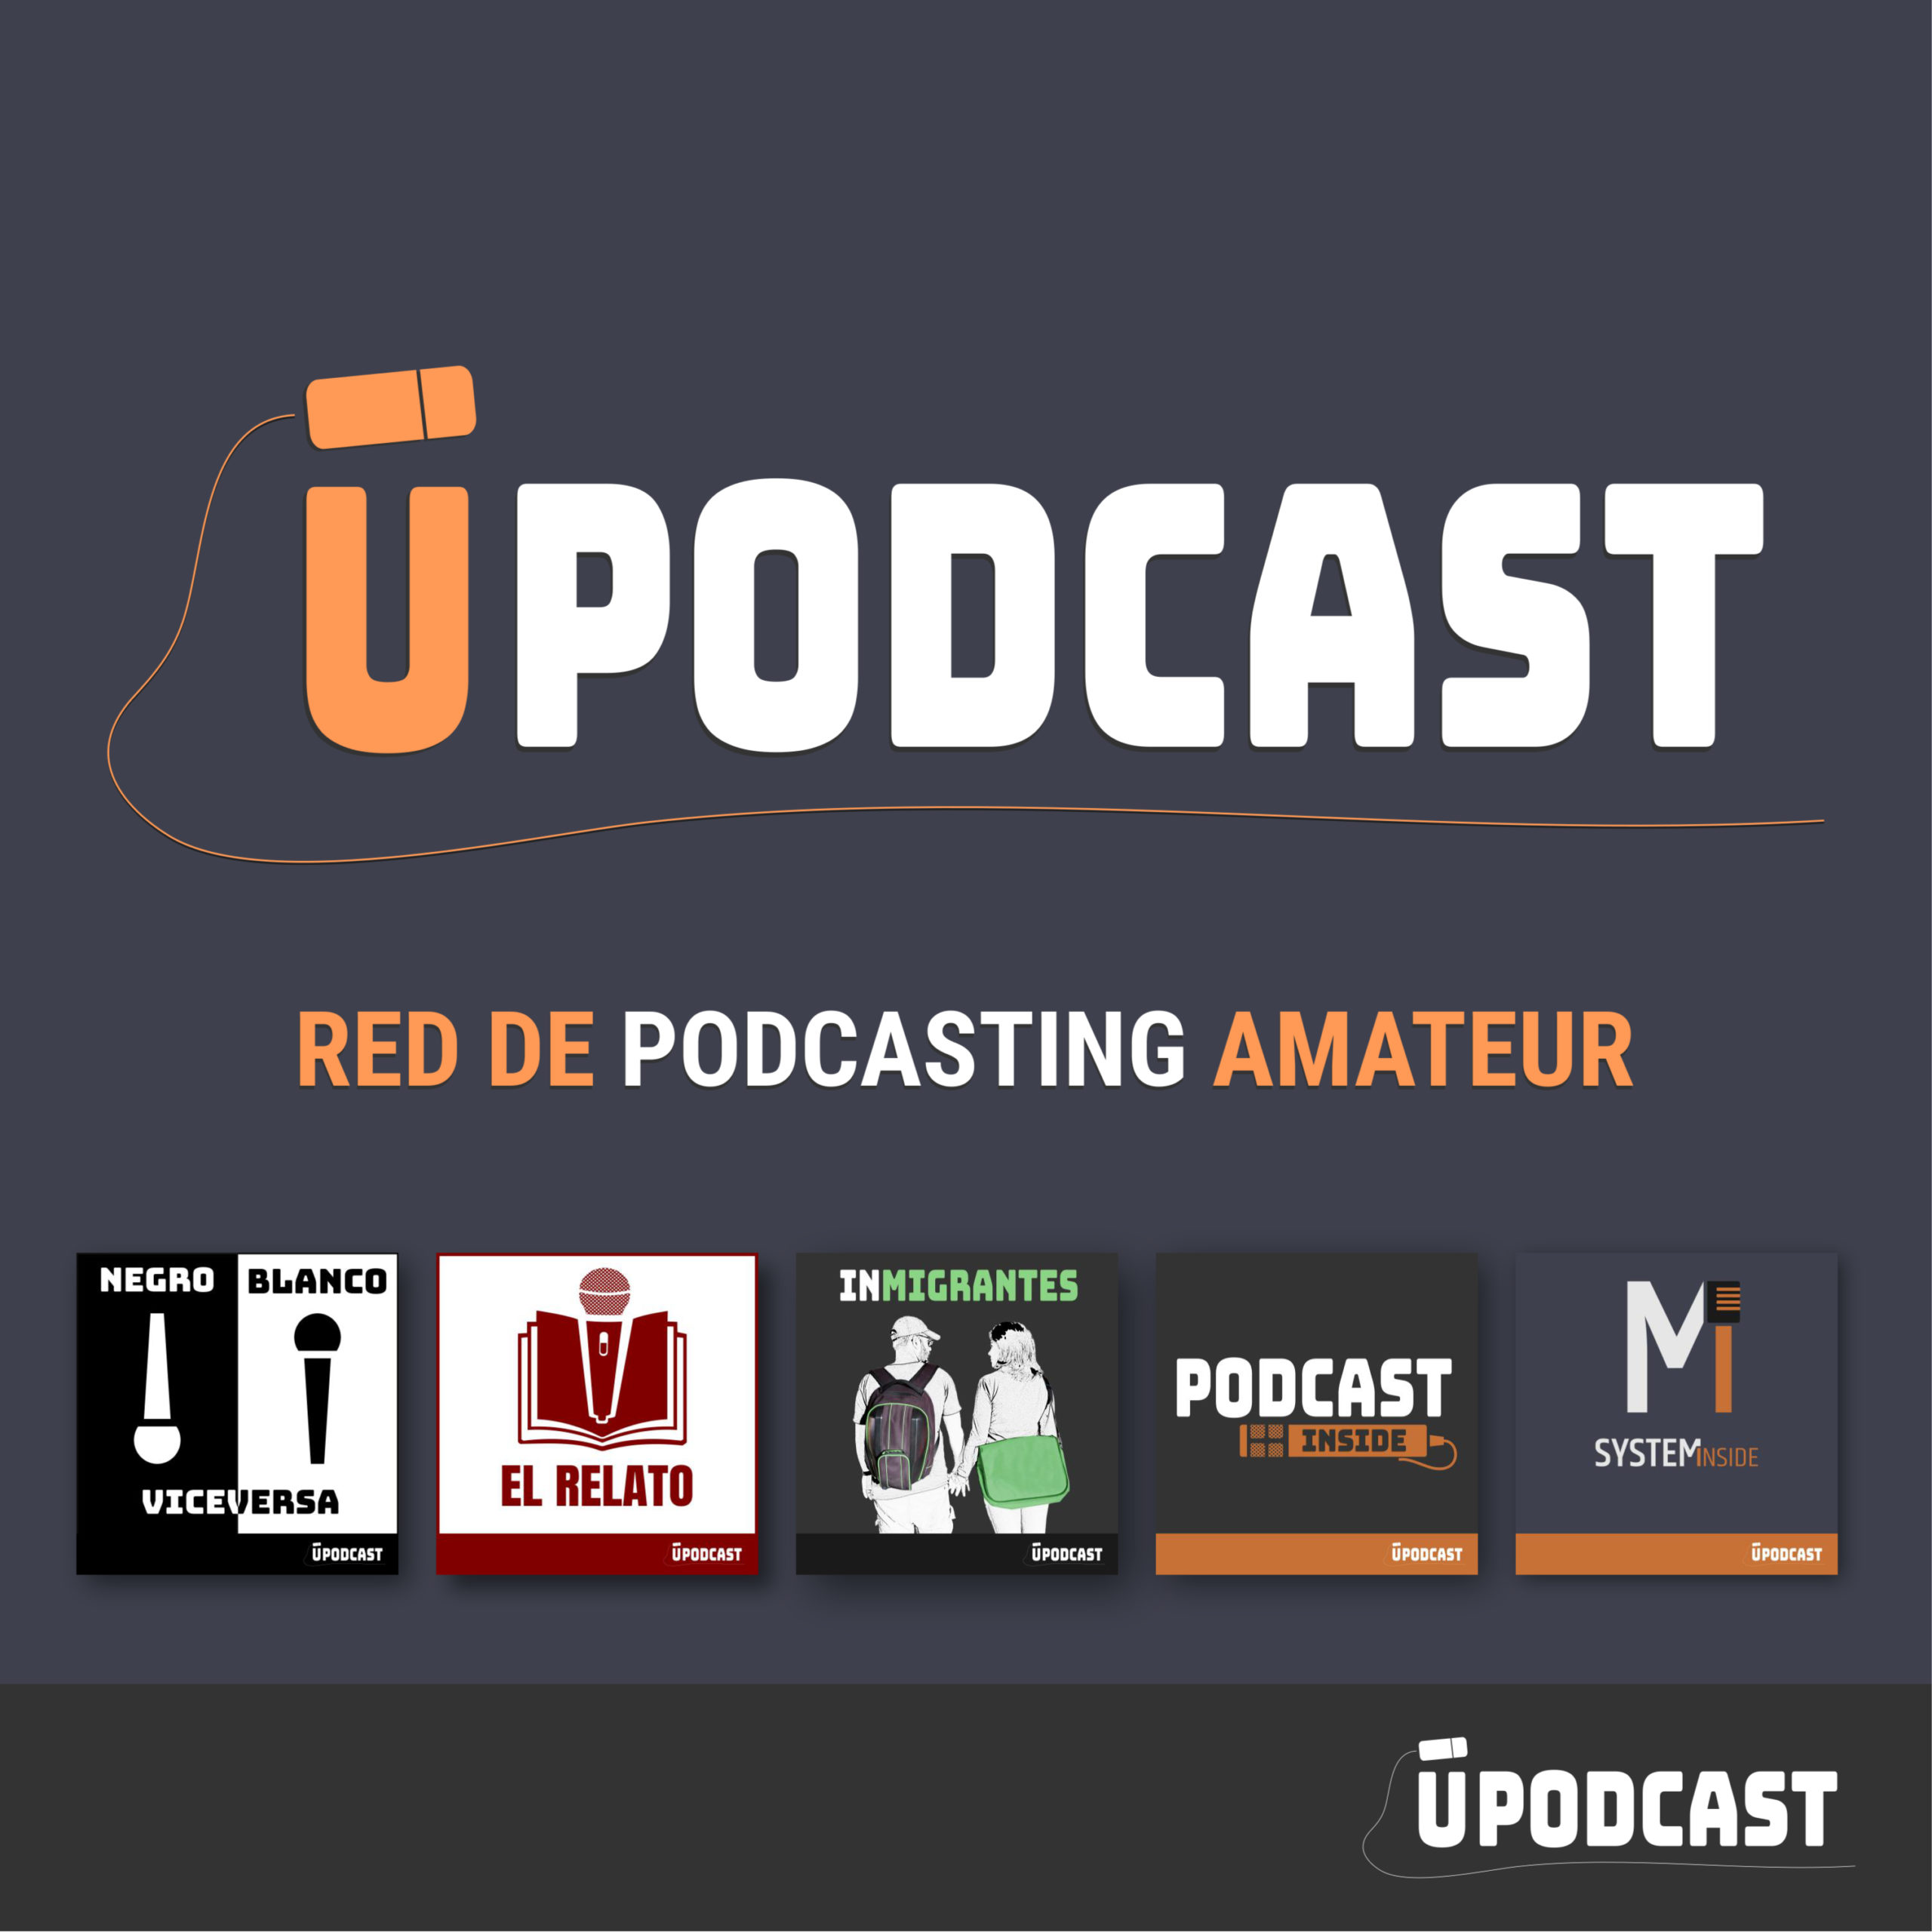 Red TuPodcast